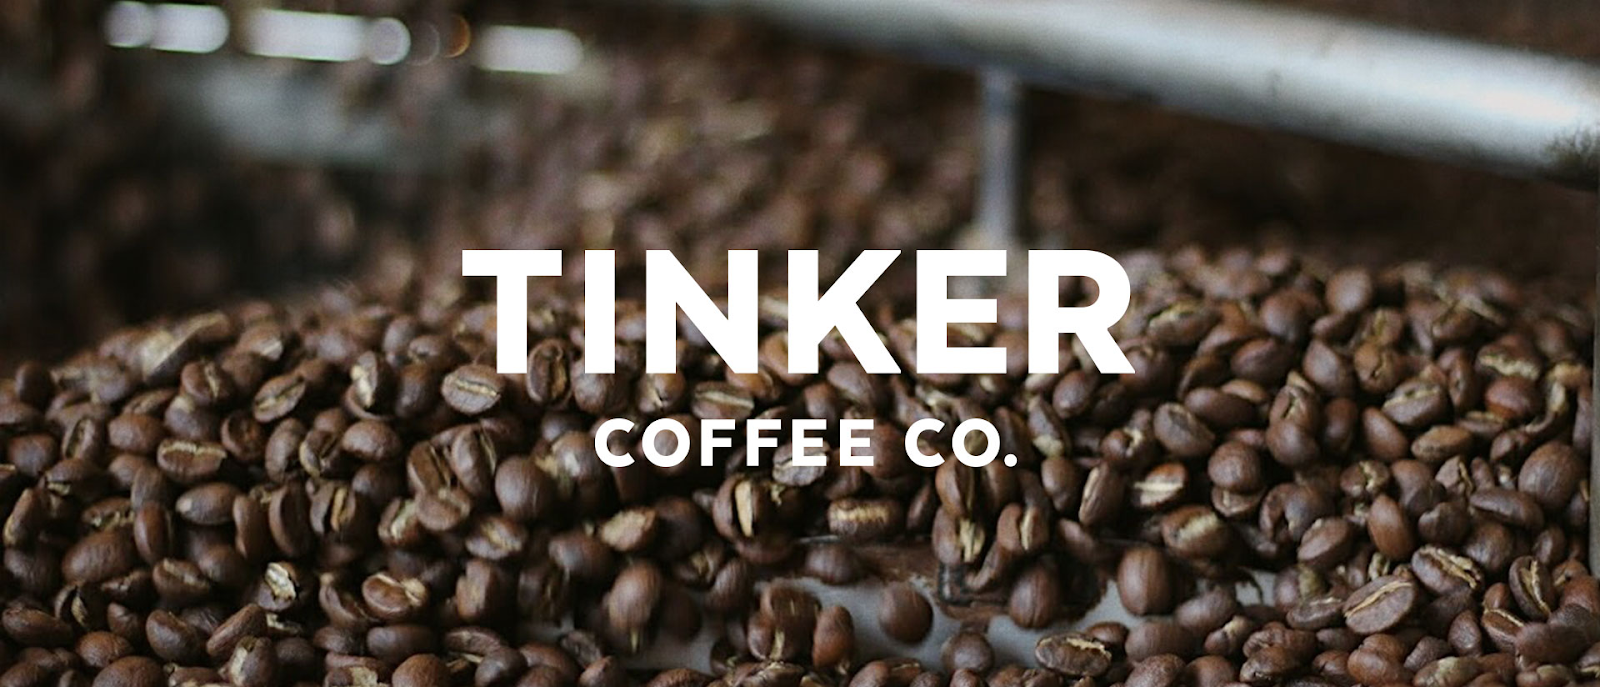 "Coffee beans from Tinker, with ""Tinker Coffee Co."" overlaid on the image in white text"